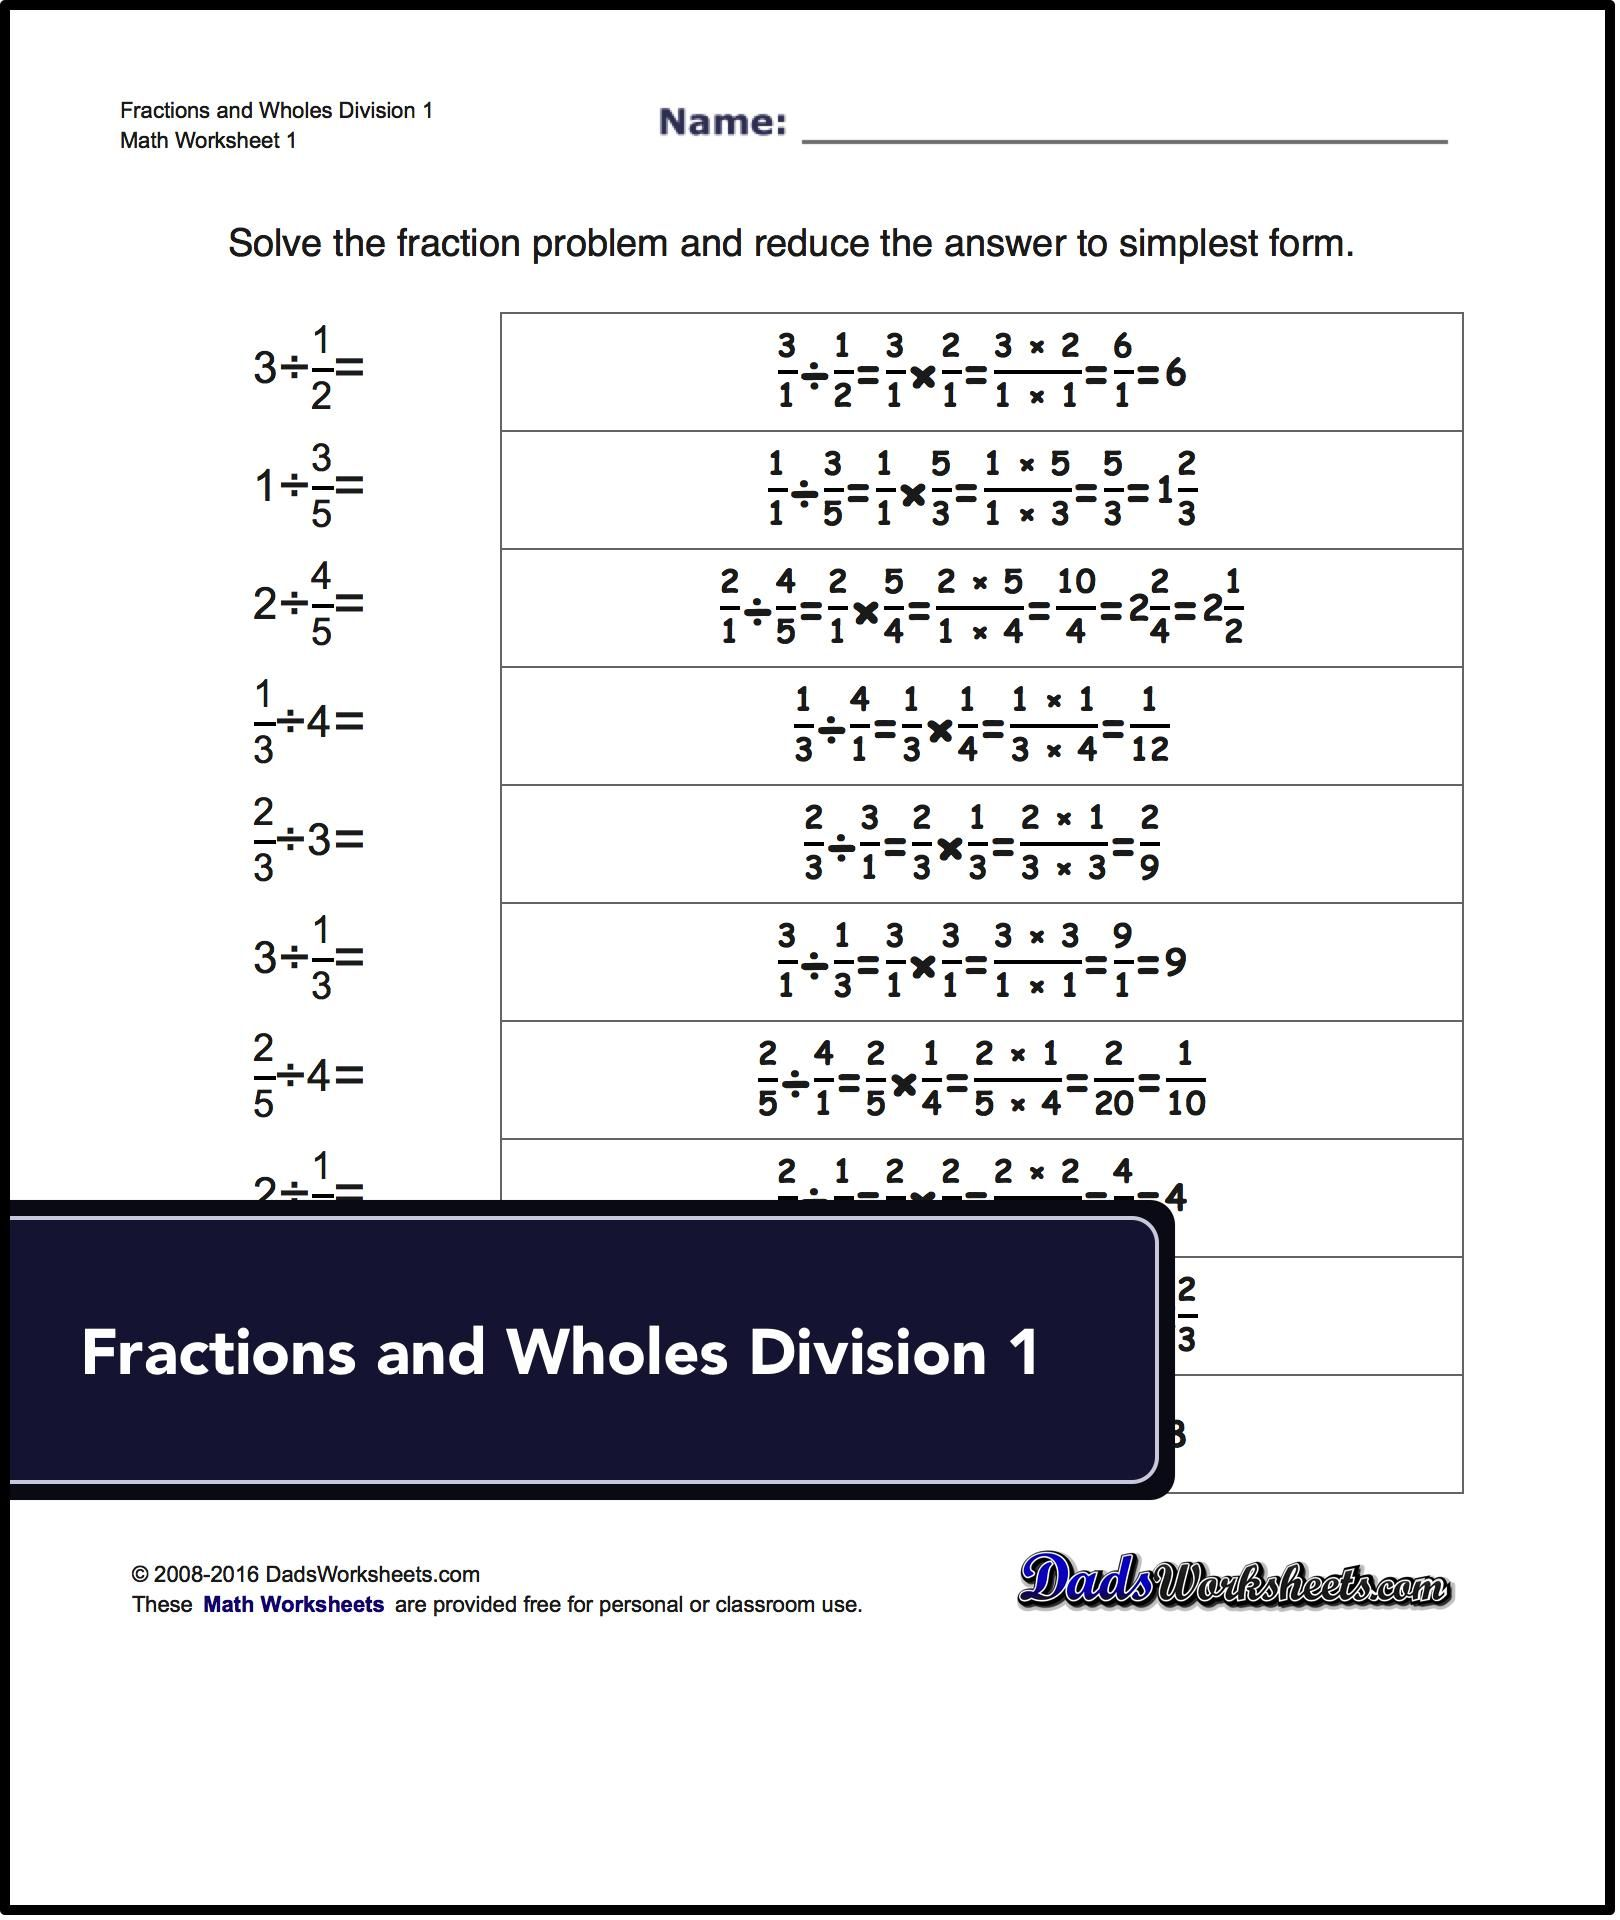 basic fraction division worksheets including dividing fractions  basic fraction division worksheets including dividing fractions with whole  numbers and dividing a whole by a fraction